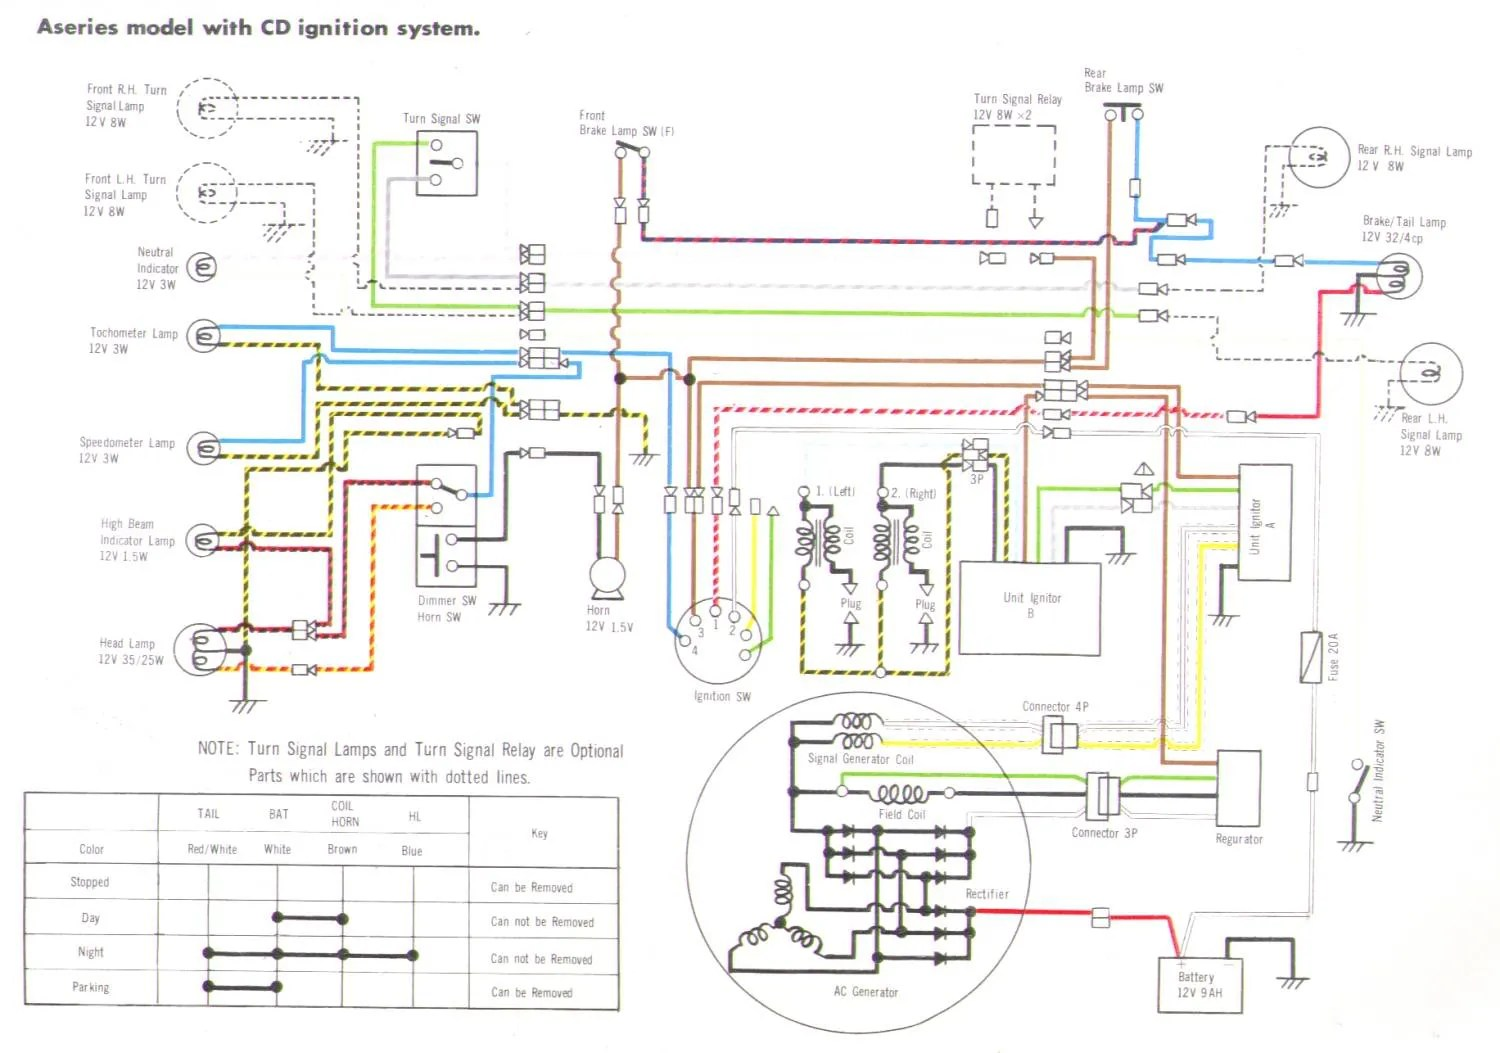 hight resolution of kawasaki wiring schematics wiring diagram schematics kawasaki vulcan 1500 wiring diagram kawasaki electrical wiring simple wiring